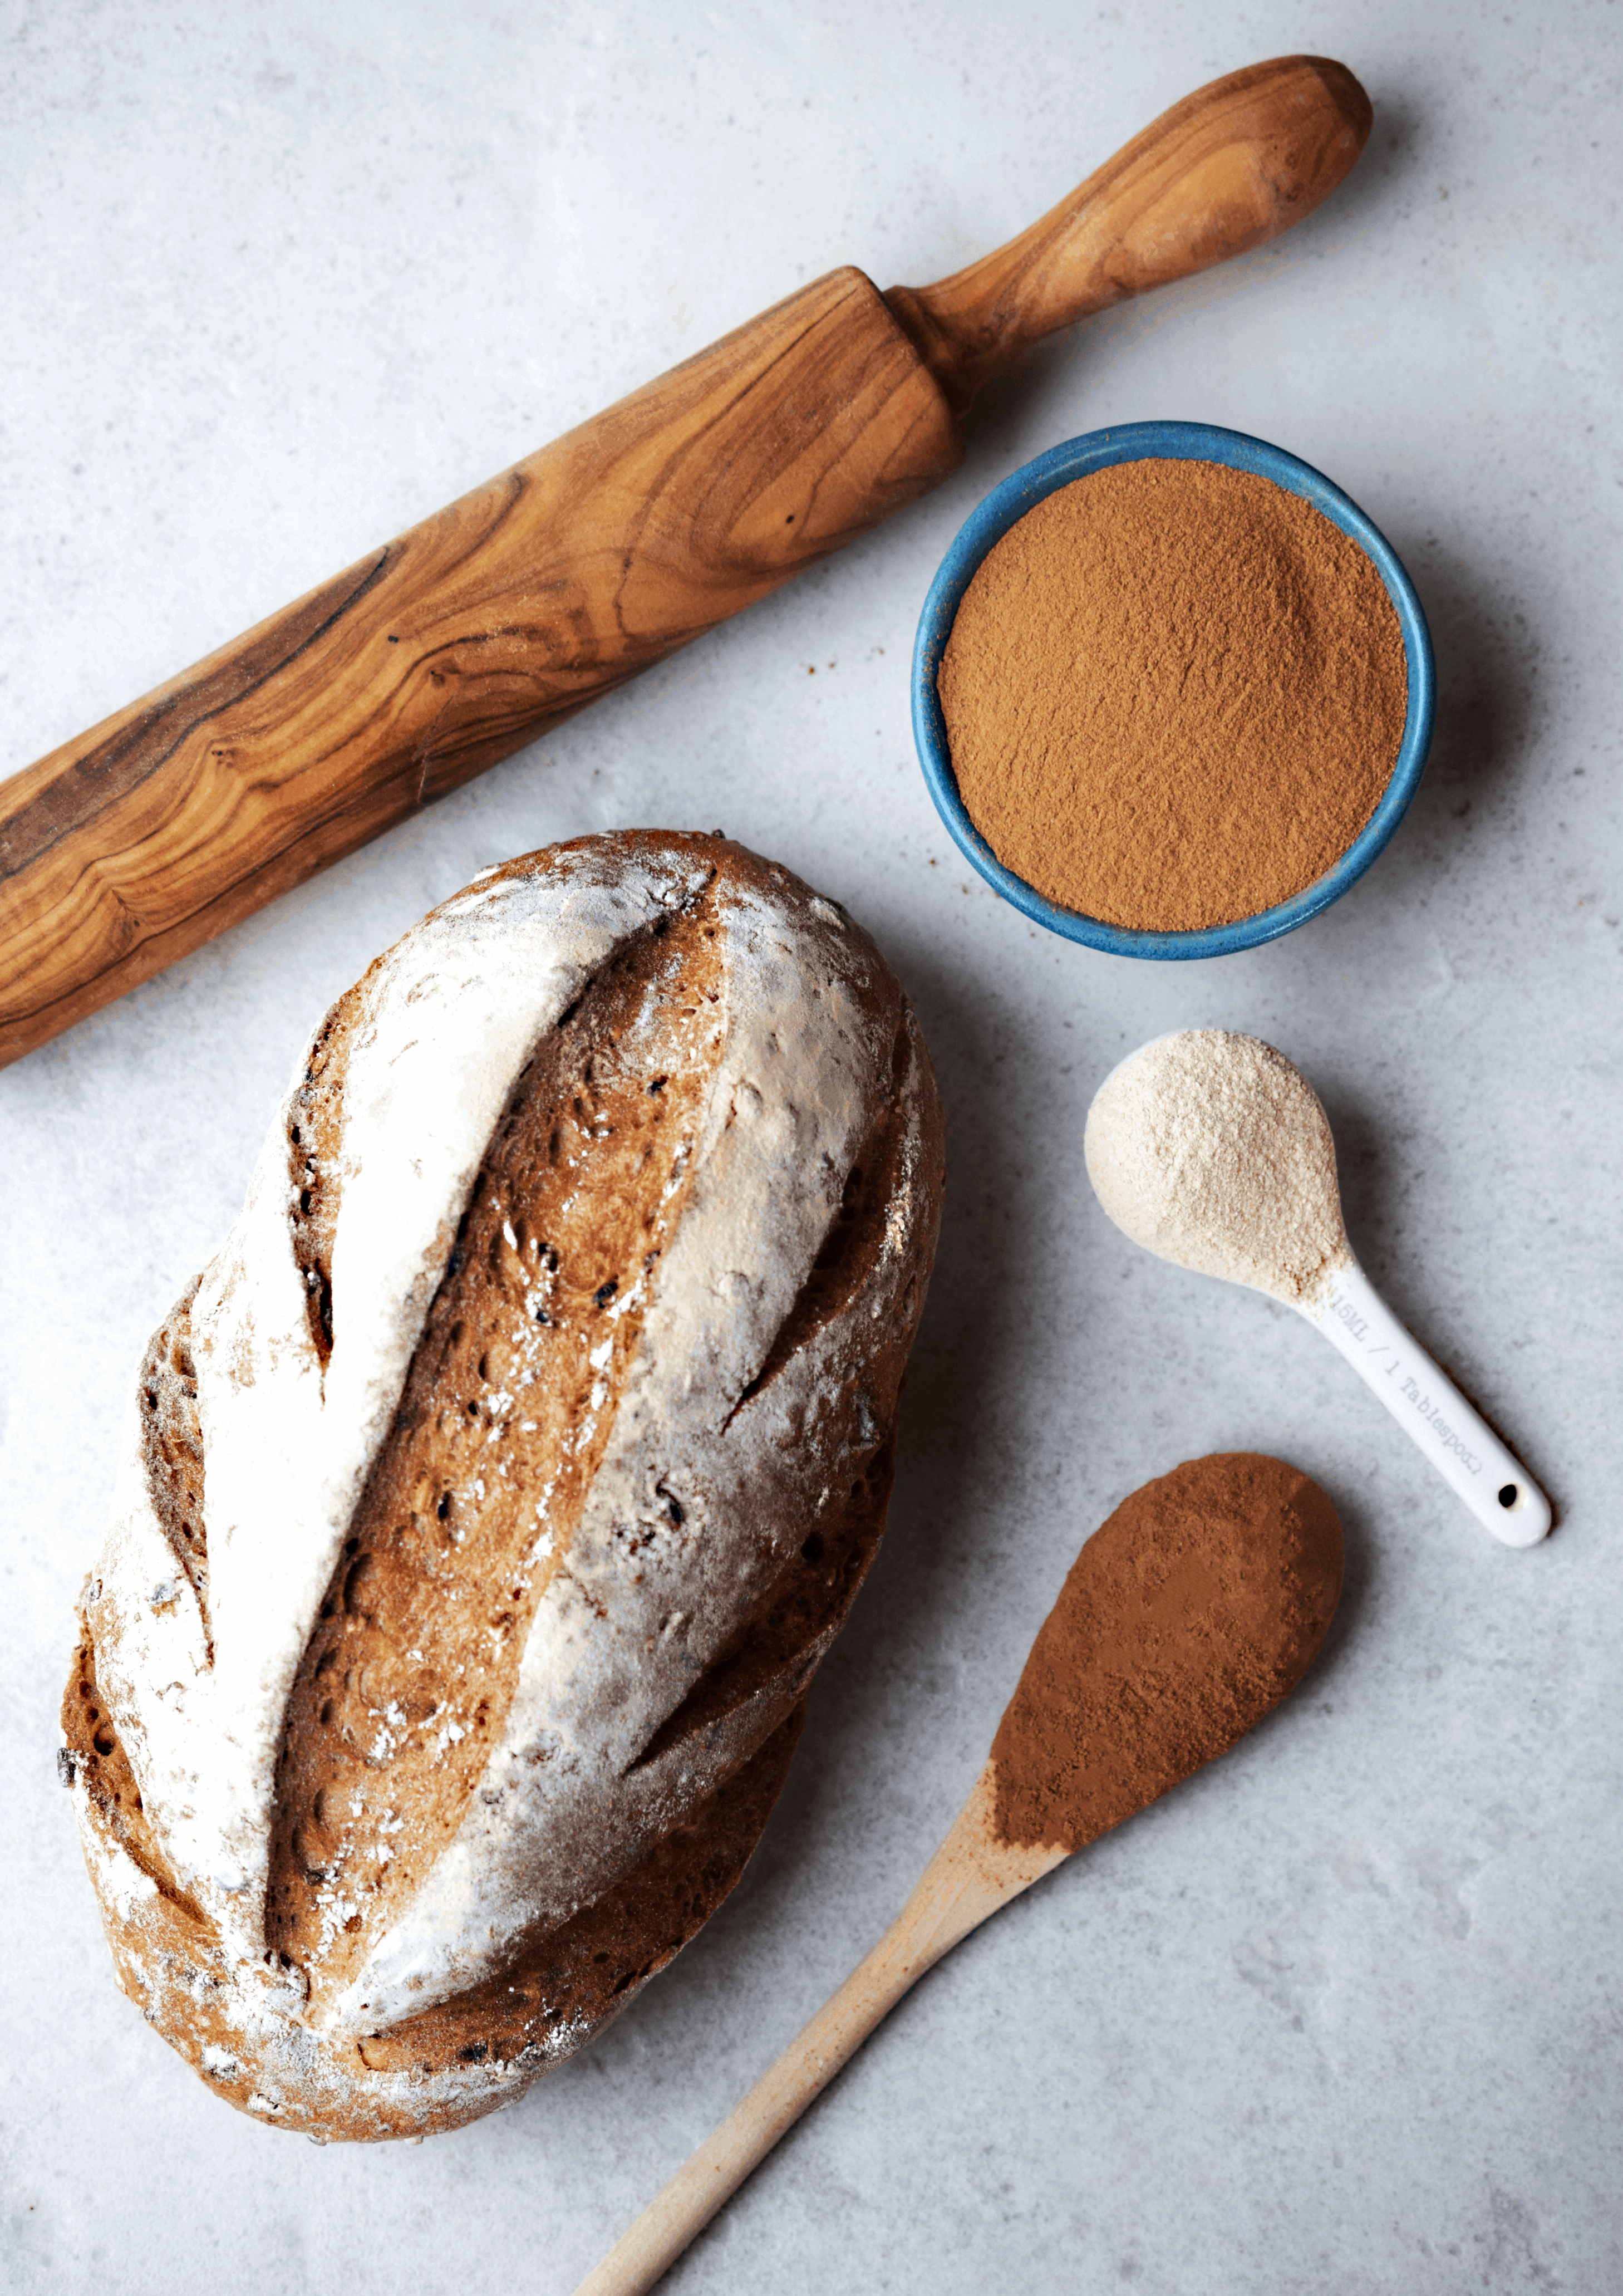 EDME malted rye flours and bread